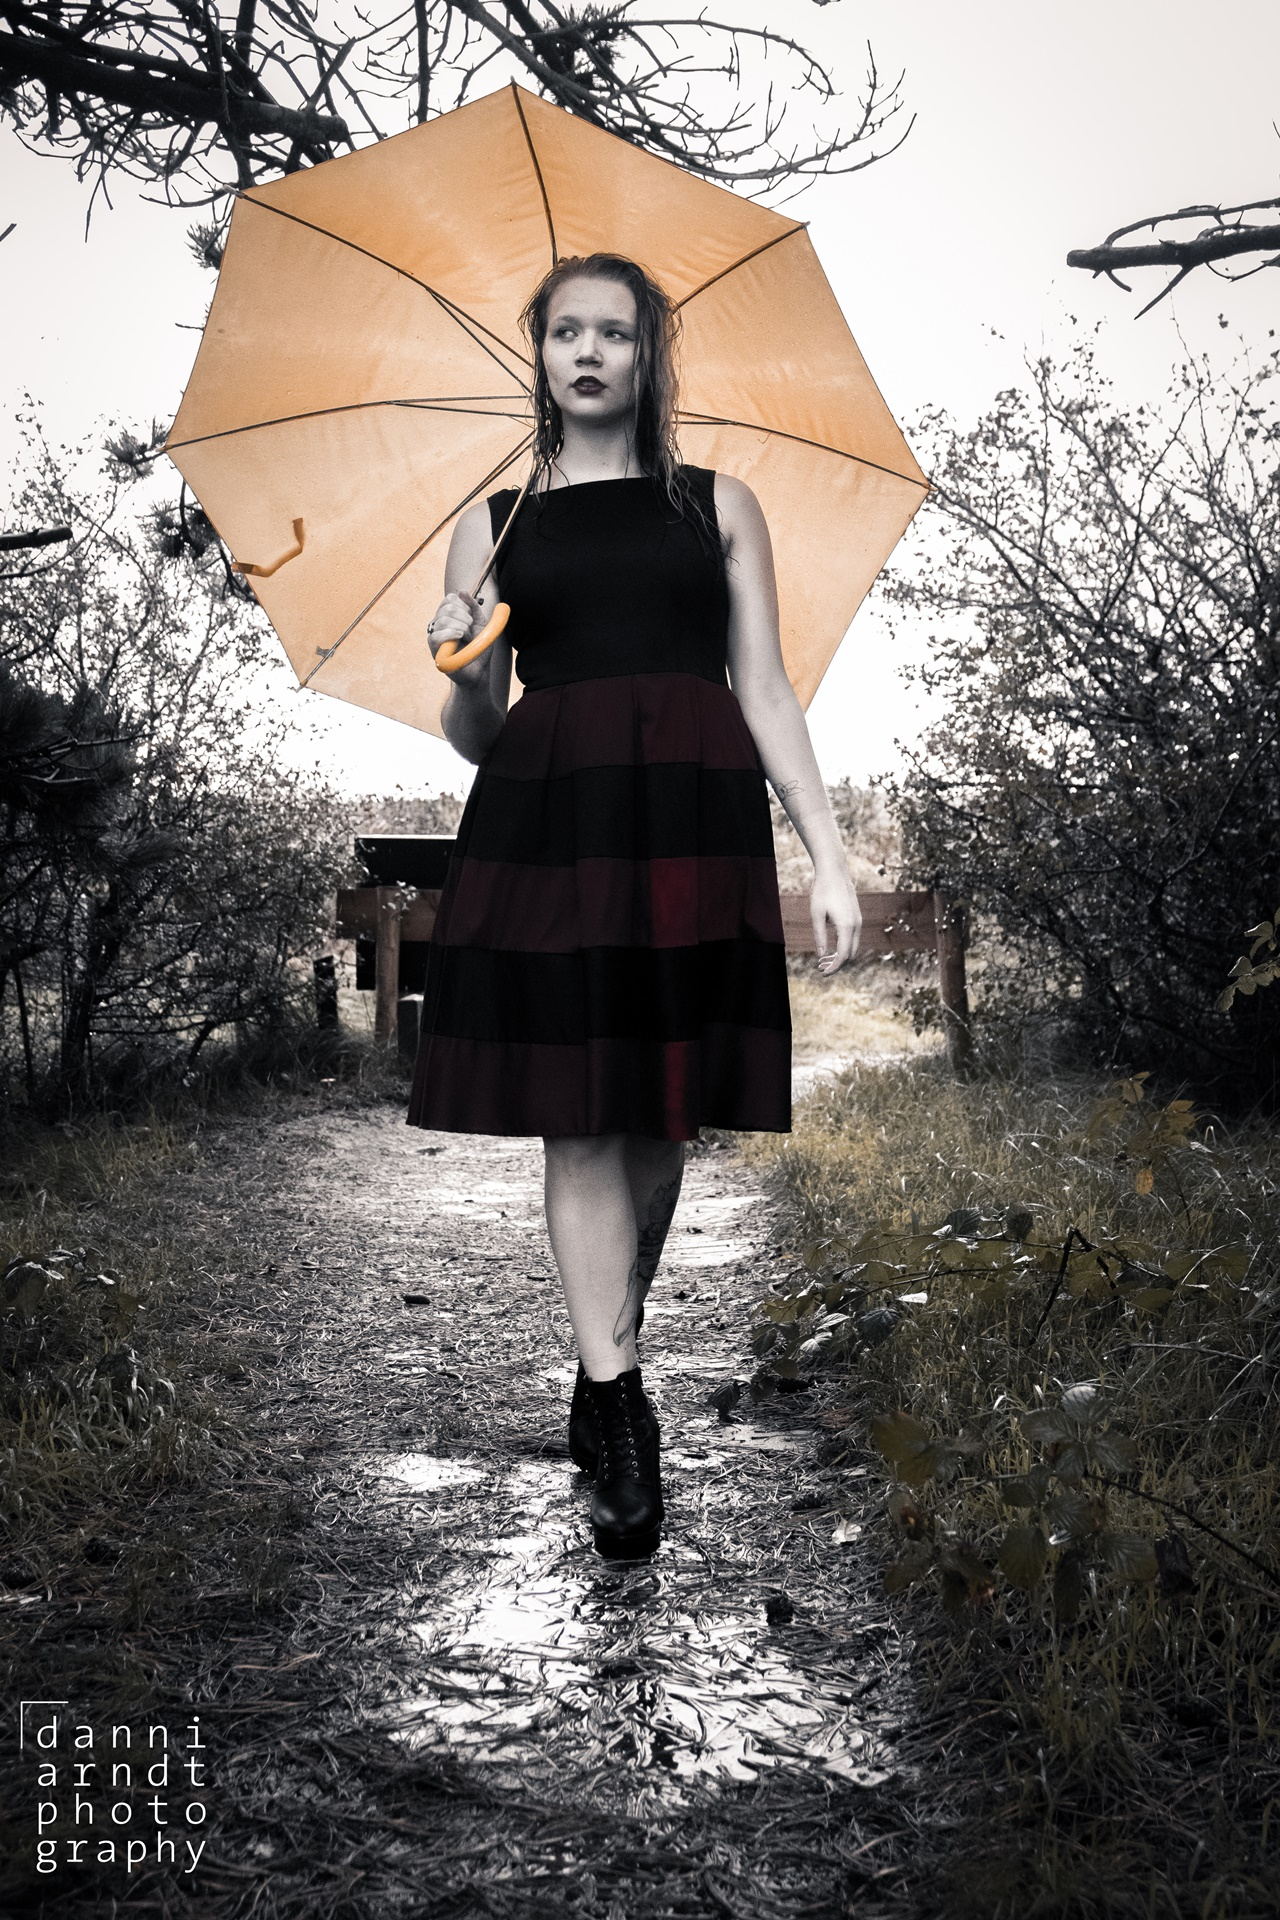 Girl Umbrella 2